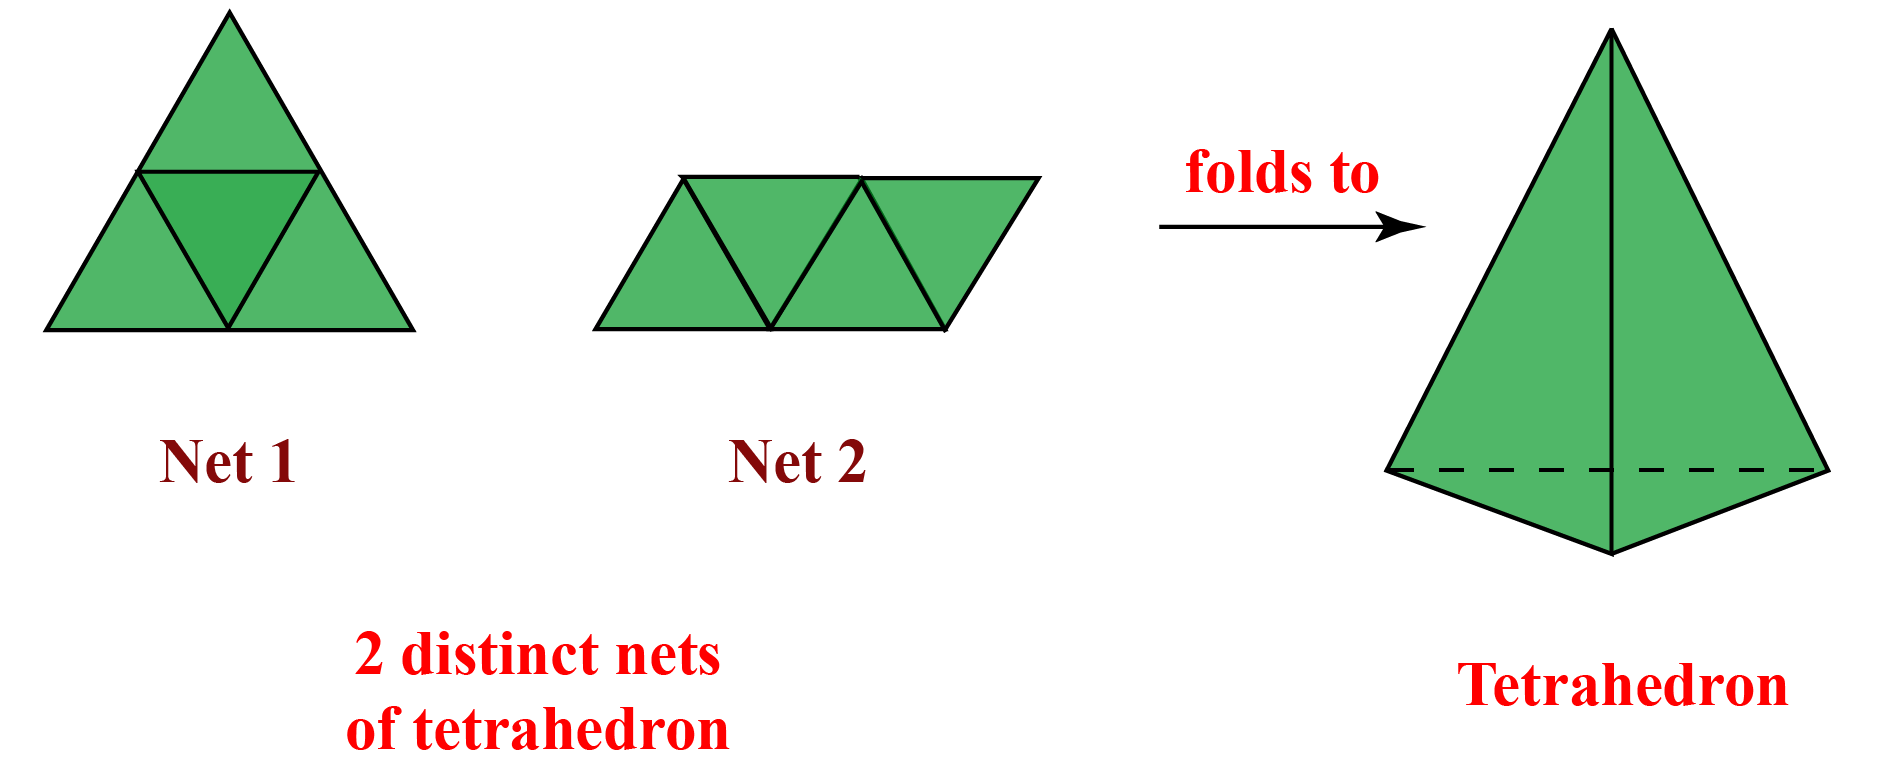 Nets of a tetrahedron folding to a solid shape